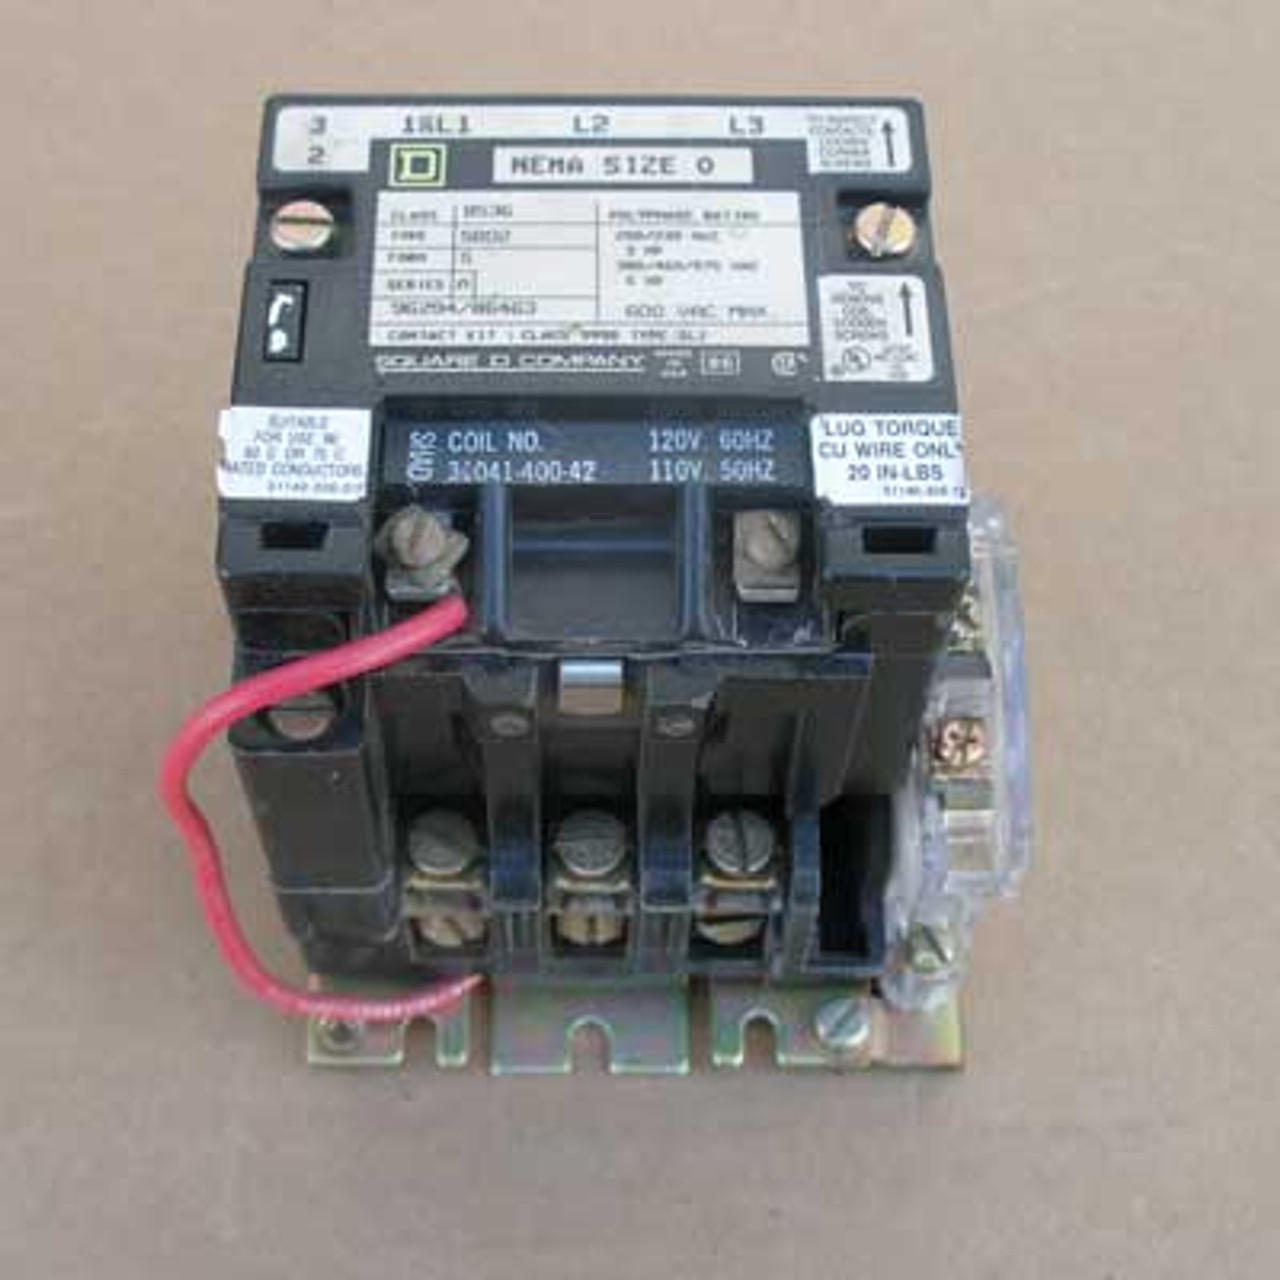 Square D 8536-SB02 Size 0 Contactor 3 Pole 120 Volt Coil Open - Used